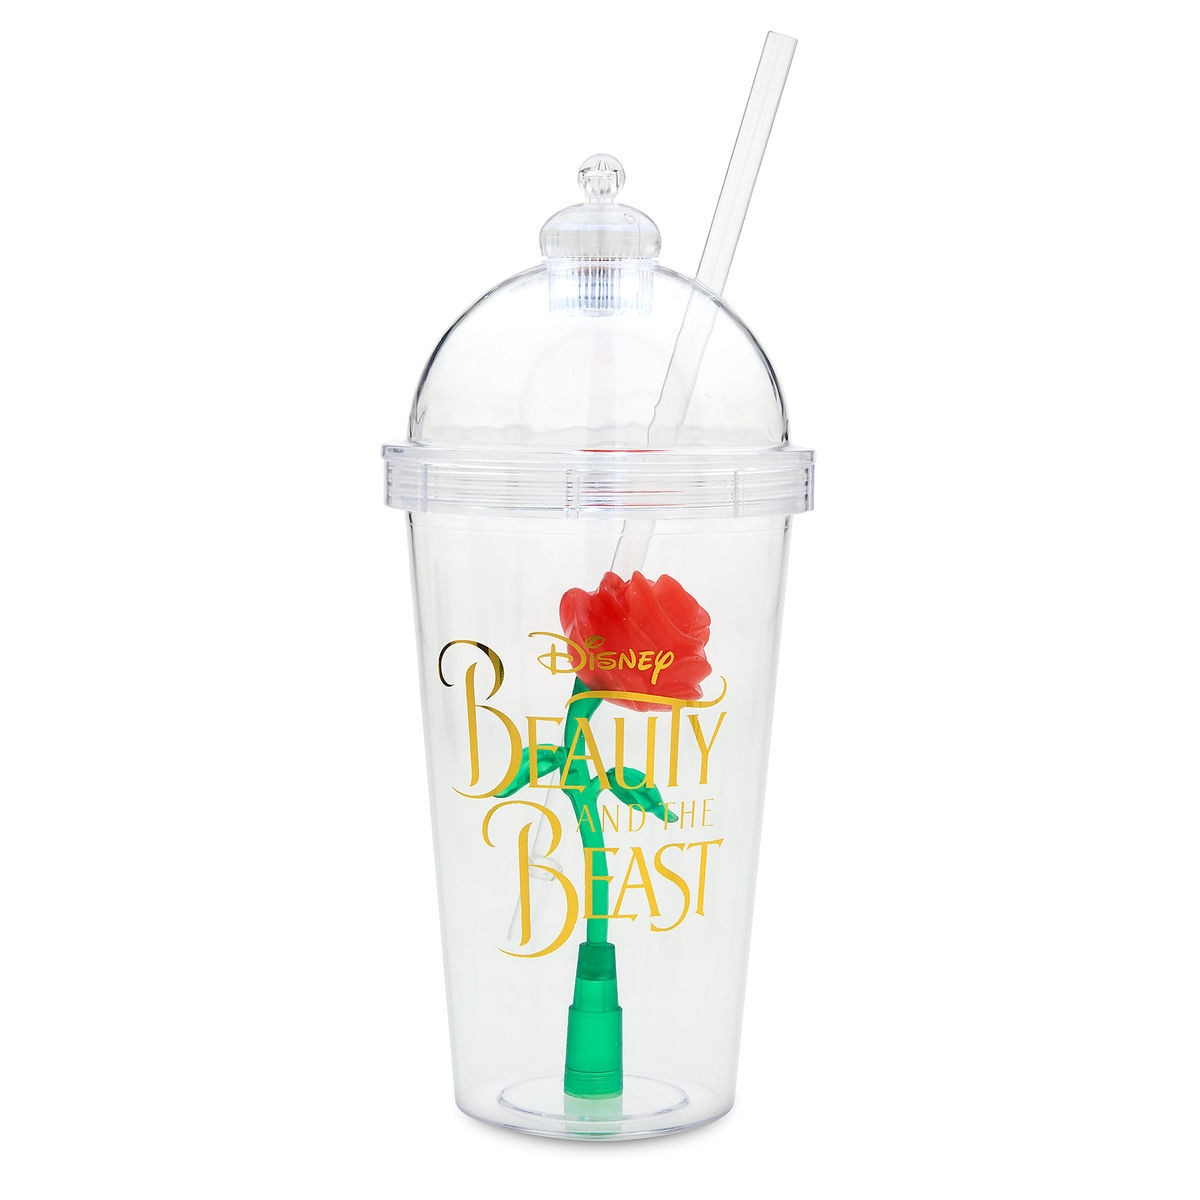 Enchanted Rose Light Up Dome Tumbler With Straw Beauty And The